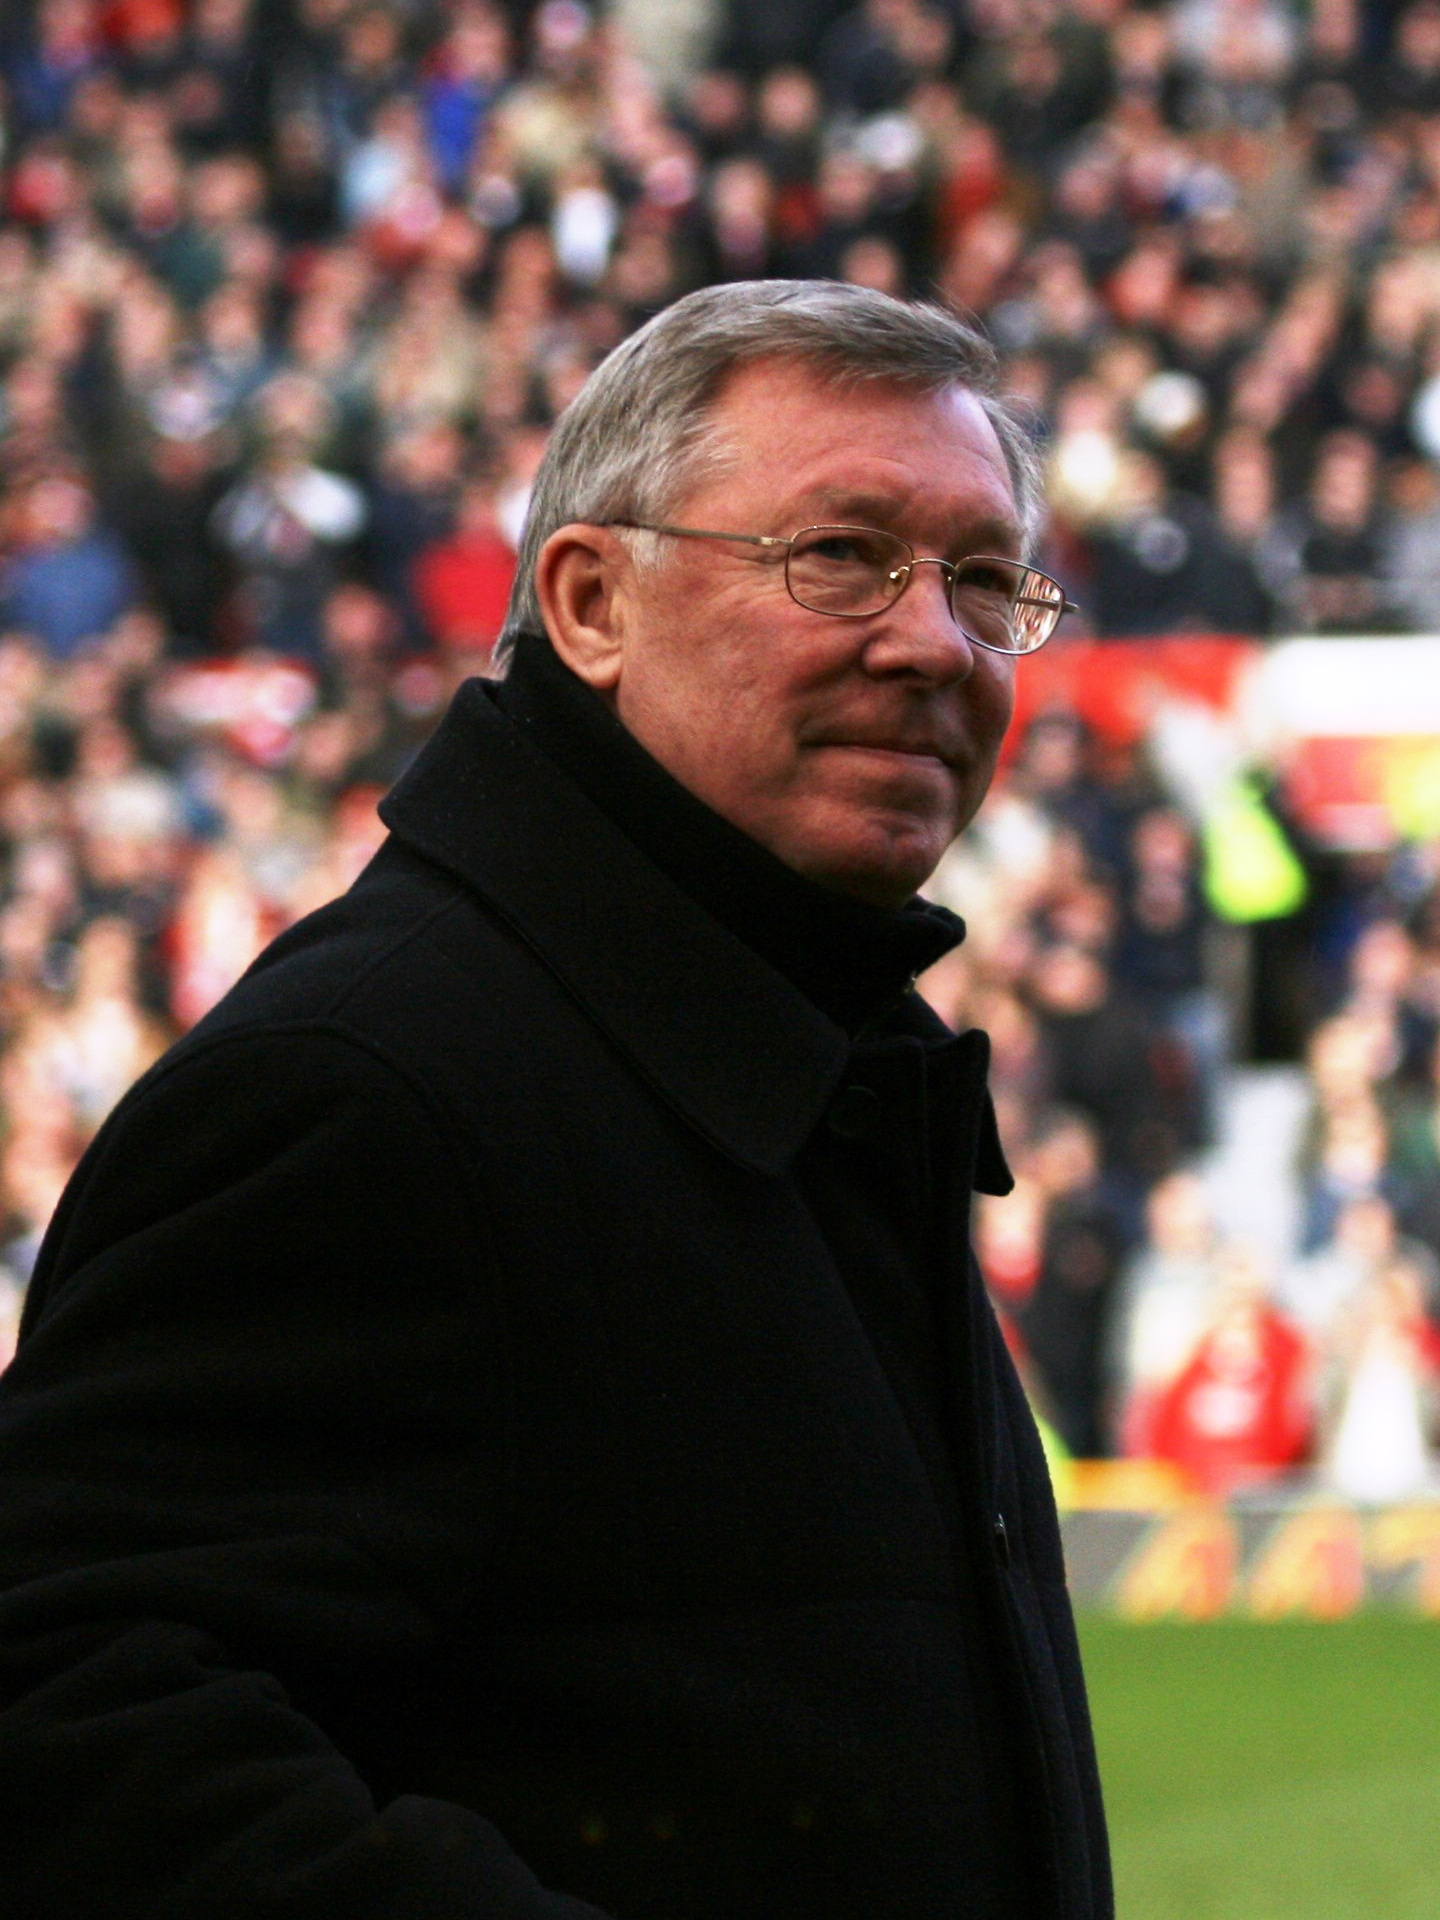 Sir Alex has been on the war path lately. He has not been holding his tongue about his true feelings towards referees lately. And maybe the FA should step in, for once. (Courtesy Wikicommons)